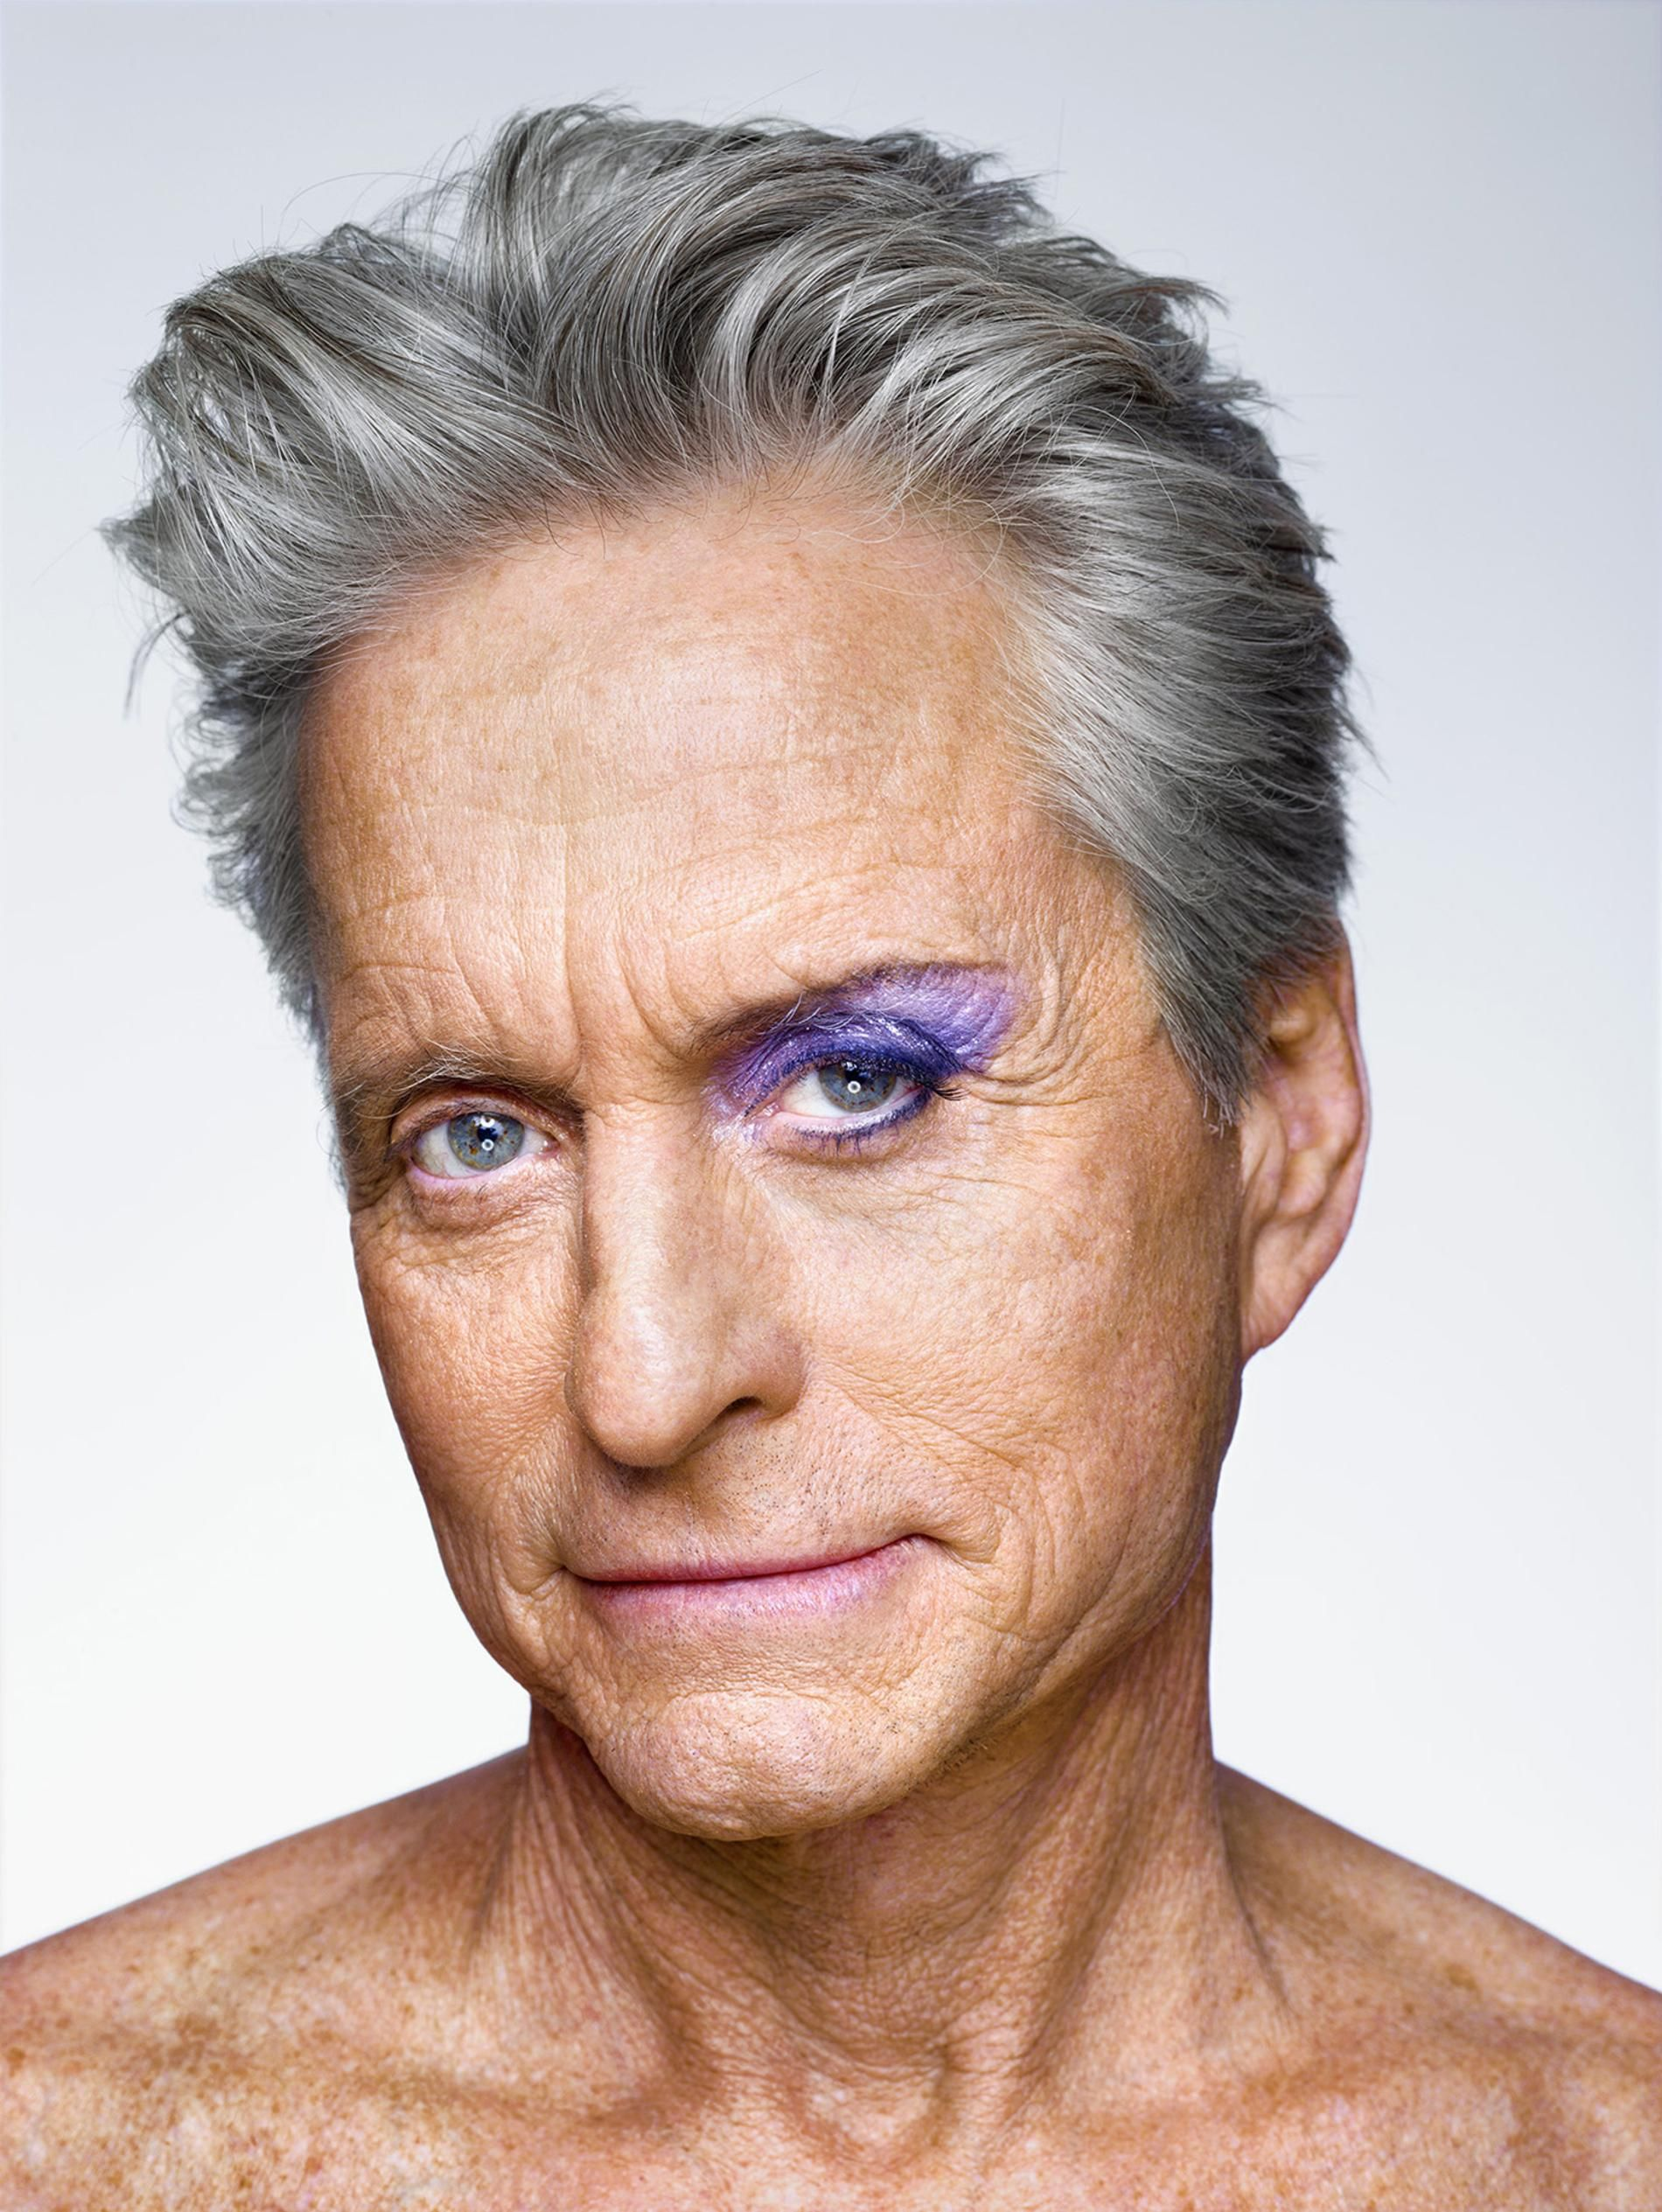 By Martin Schoeller (With images) Martin schoeller